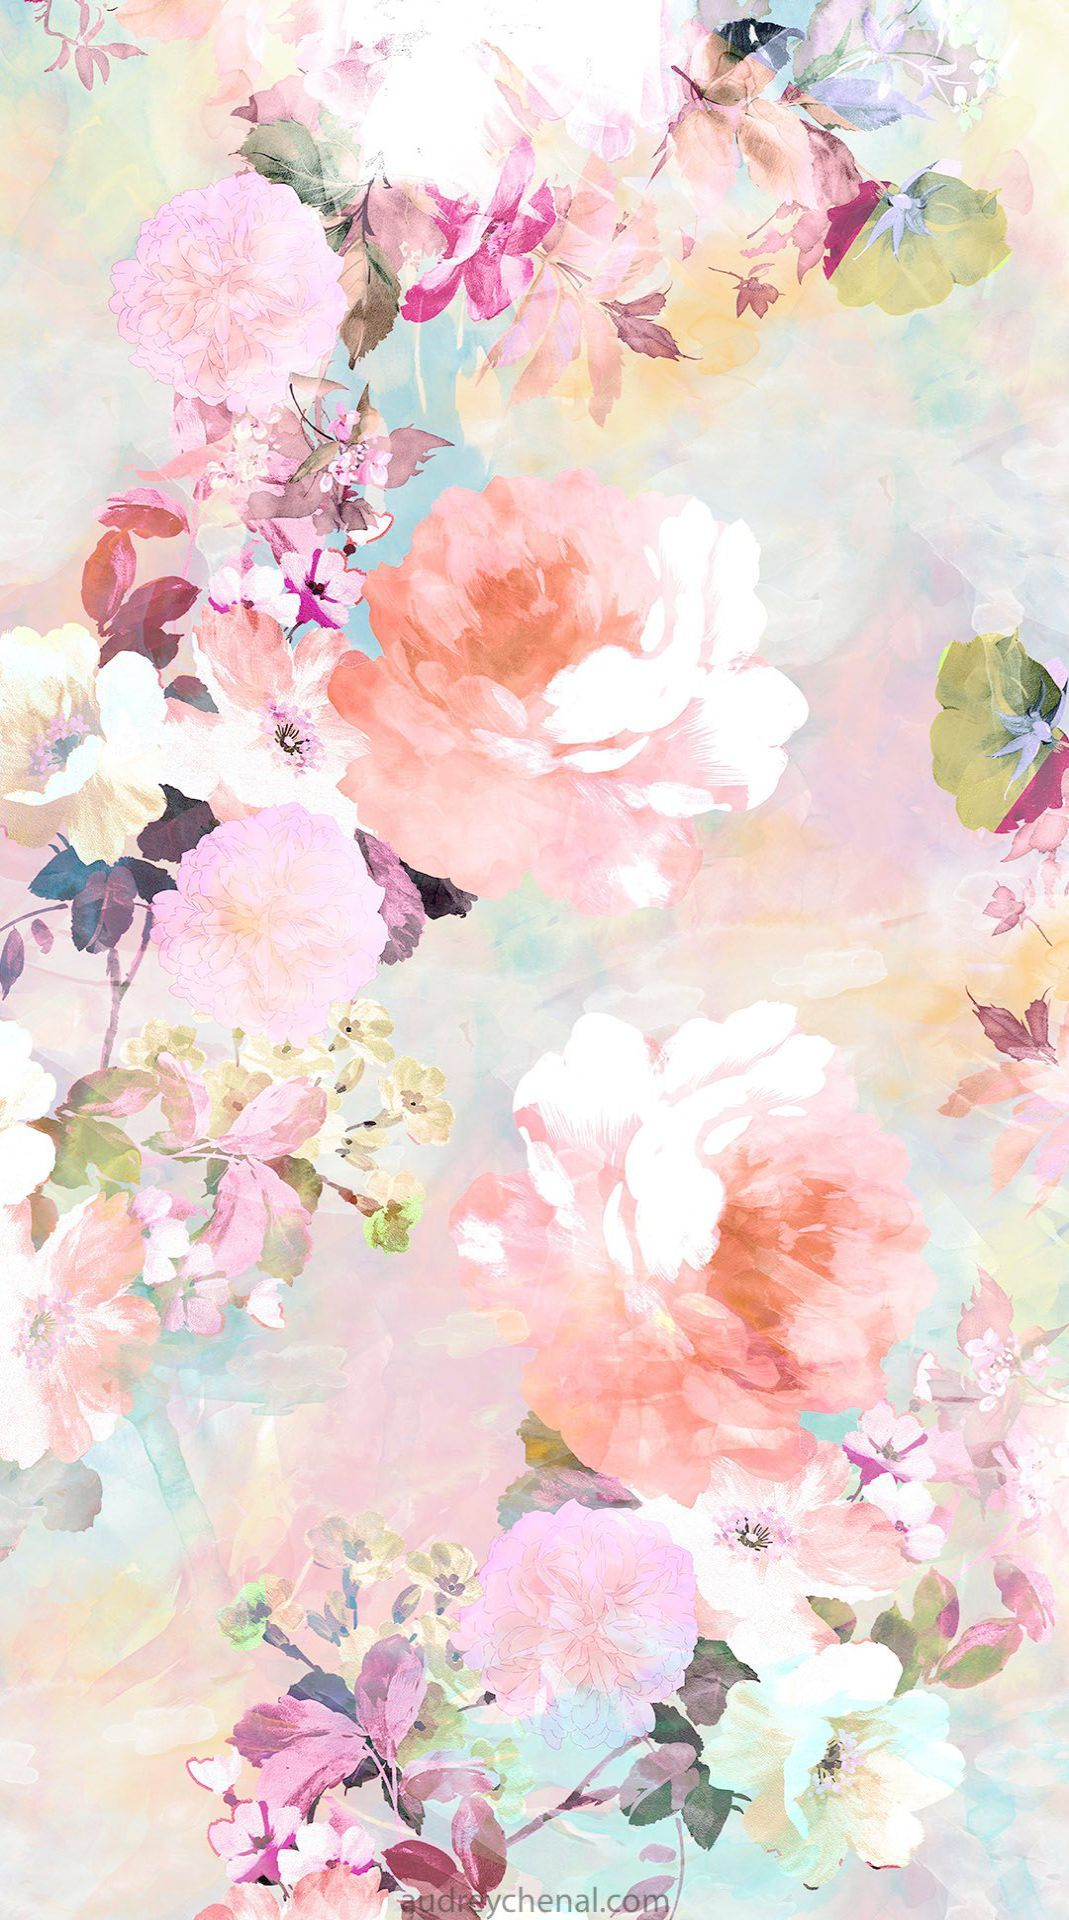 Gadgets Dps Loadout That Iphone Wallpaper Hd Disney Of Gadgets And Gizmos 201 Floral Watercolor Background Pastel Background Wallpapers Floral Wallpaper Iphone